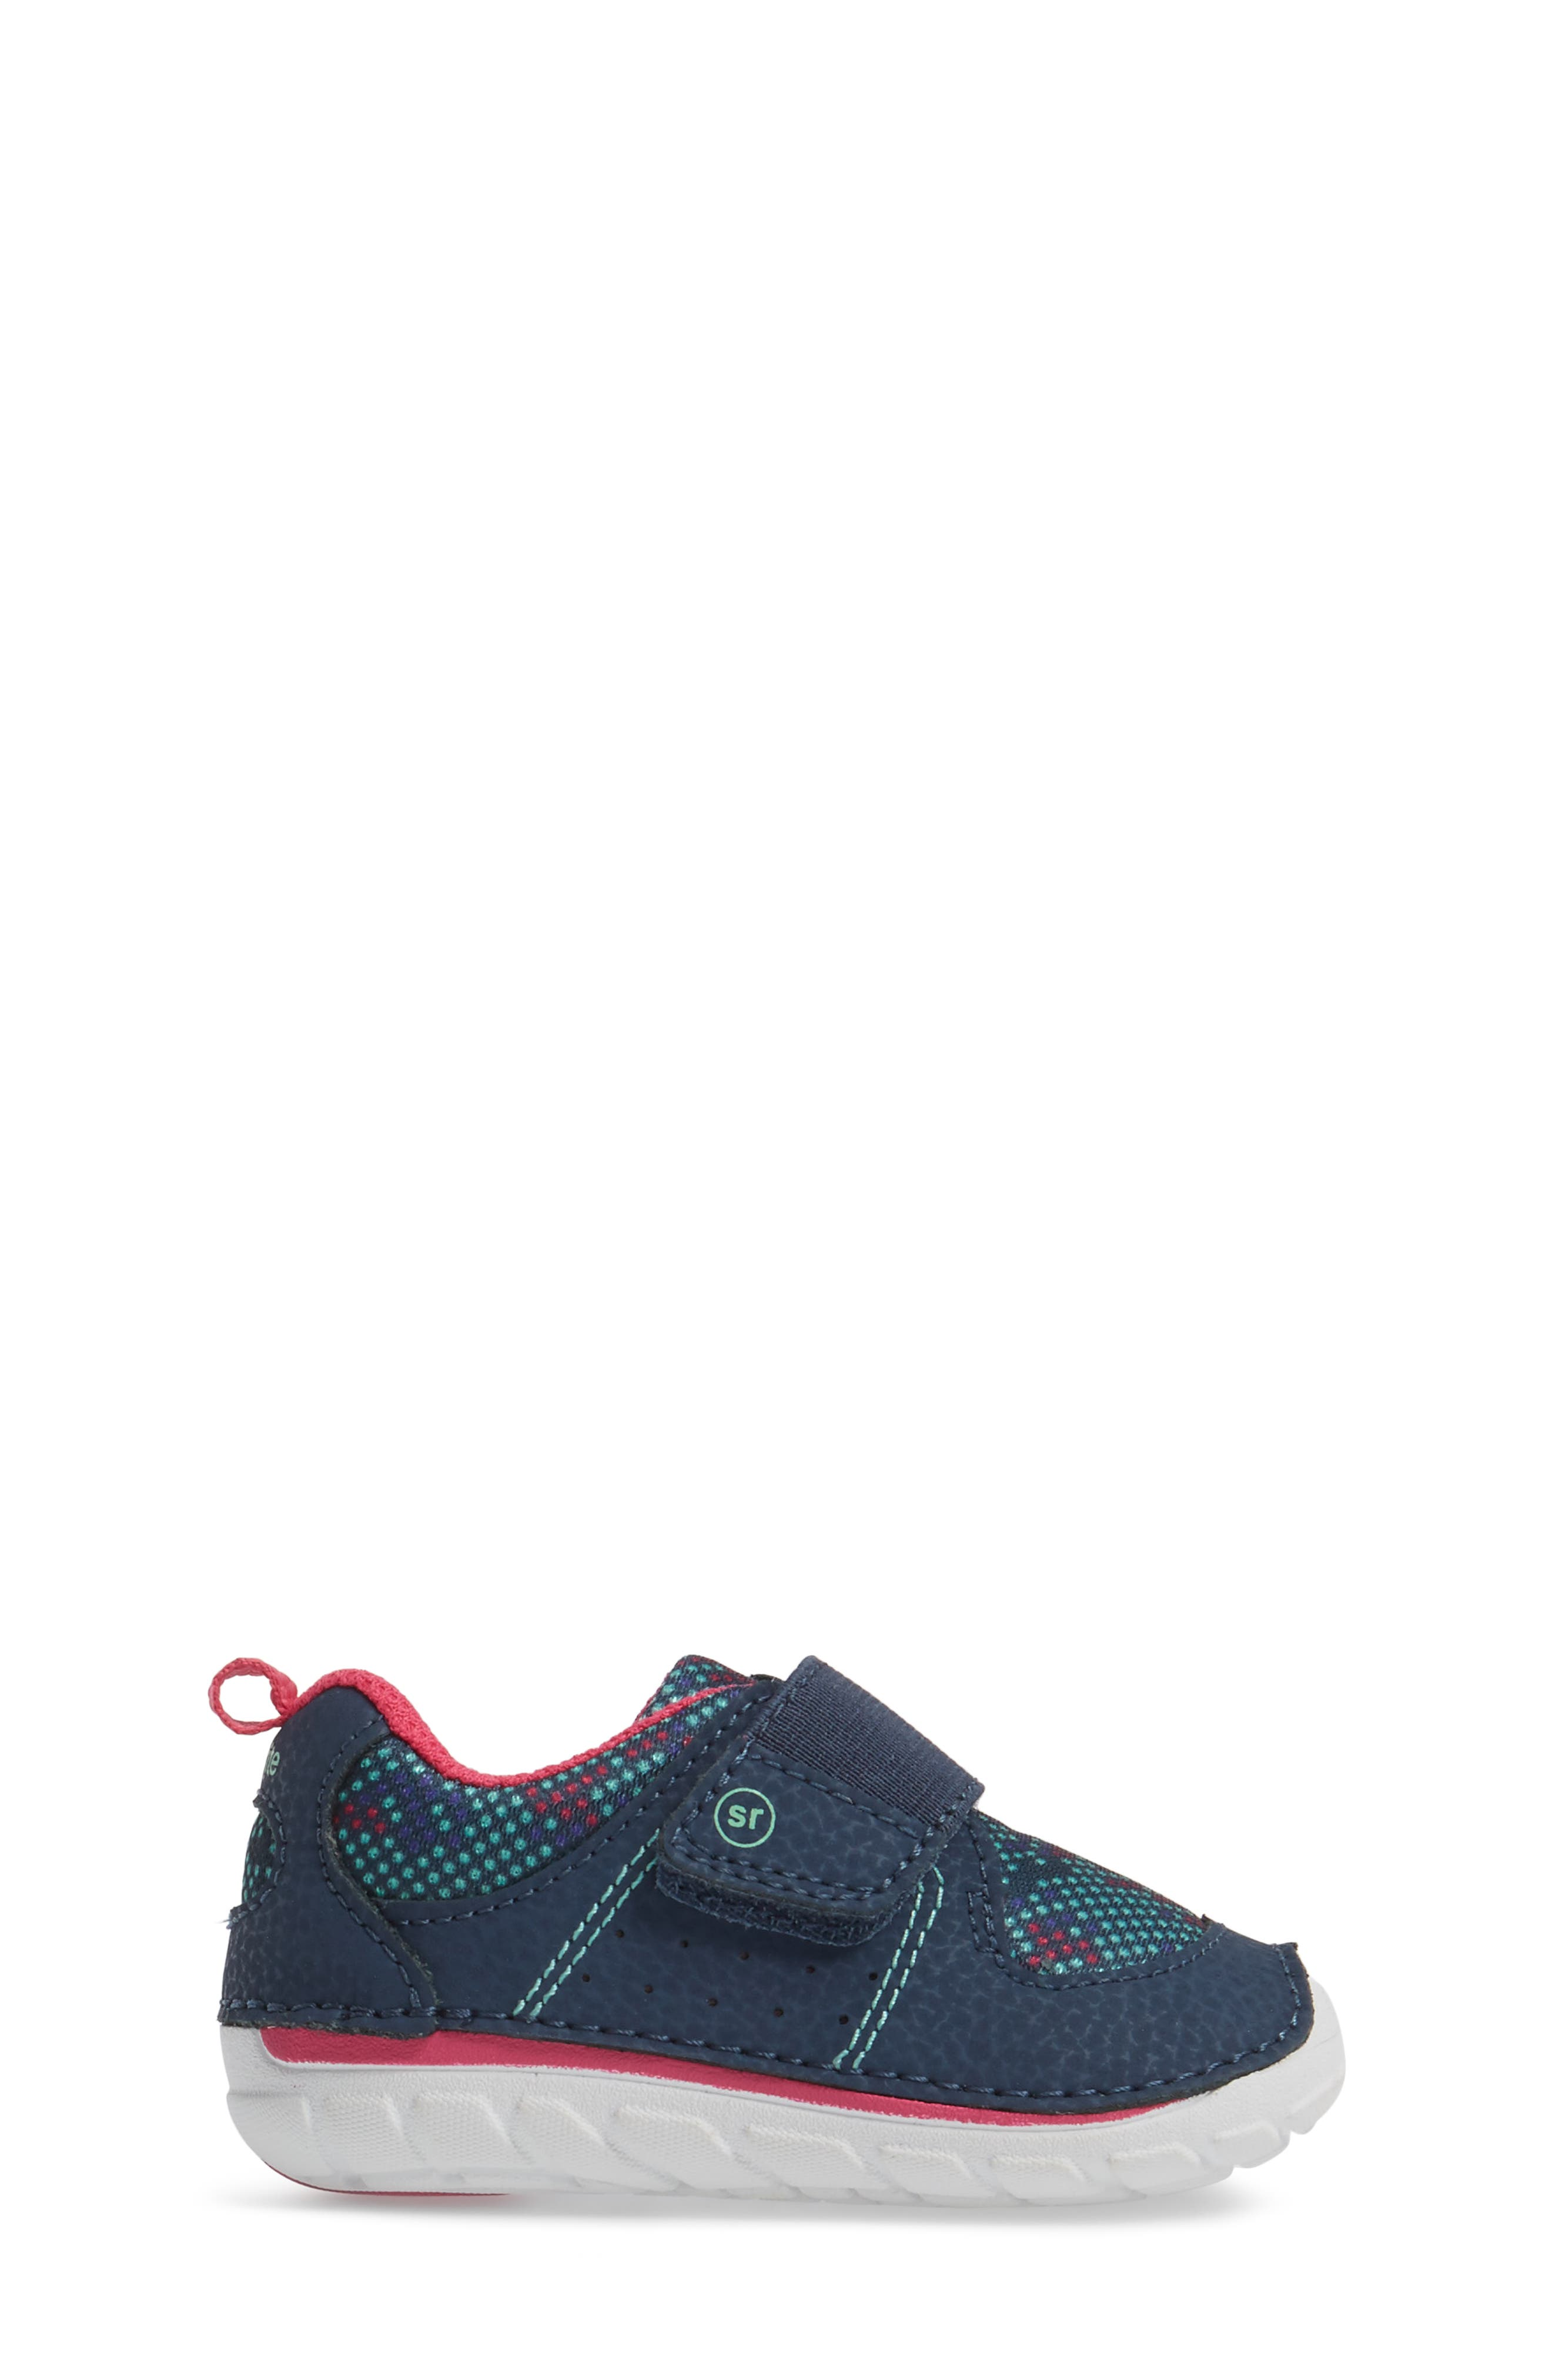 Soft Motion<sup>™</sup> Ripley Sneaker,                             Alternate thumbnail 3, color,                             410